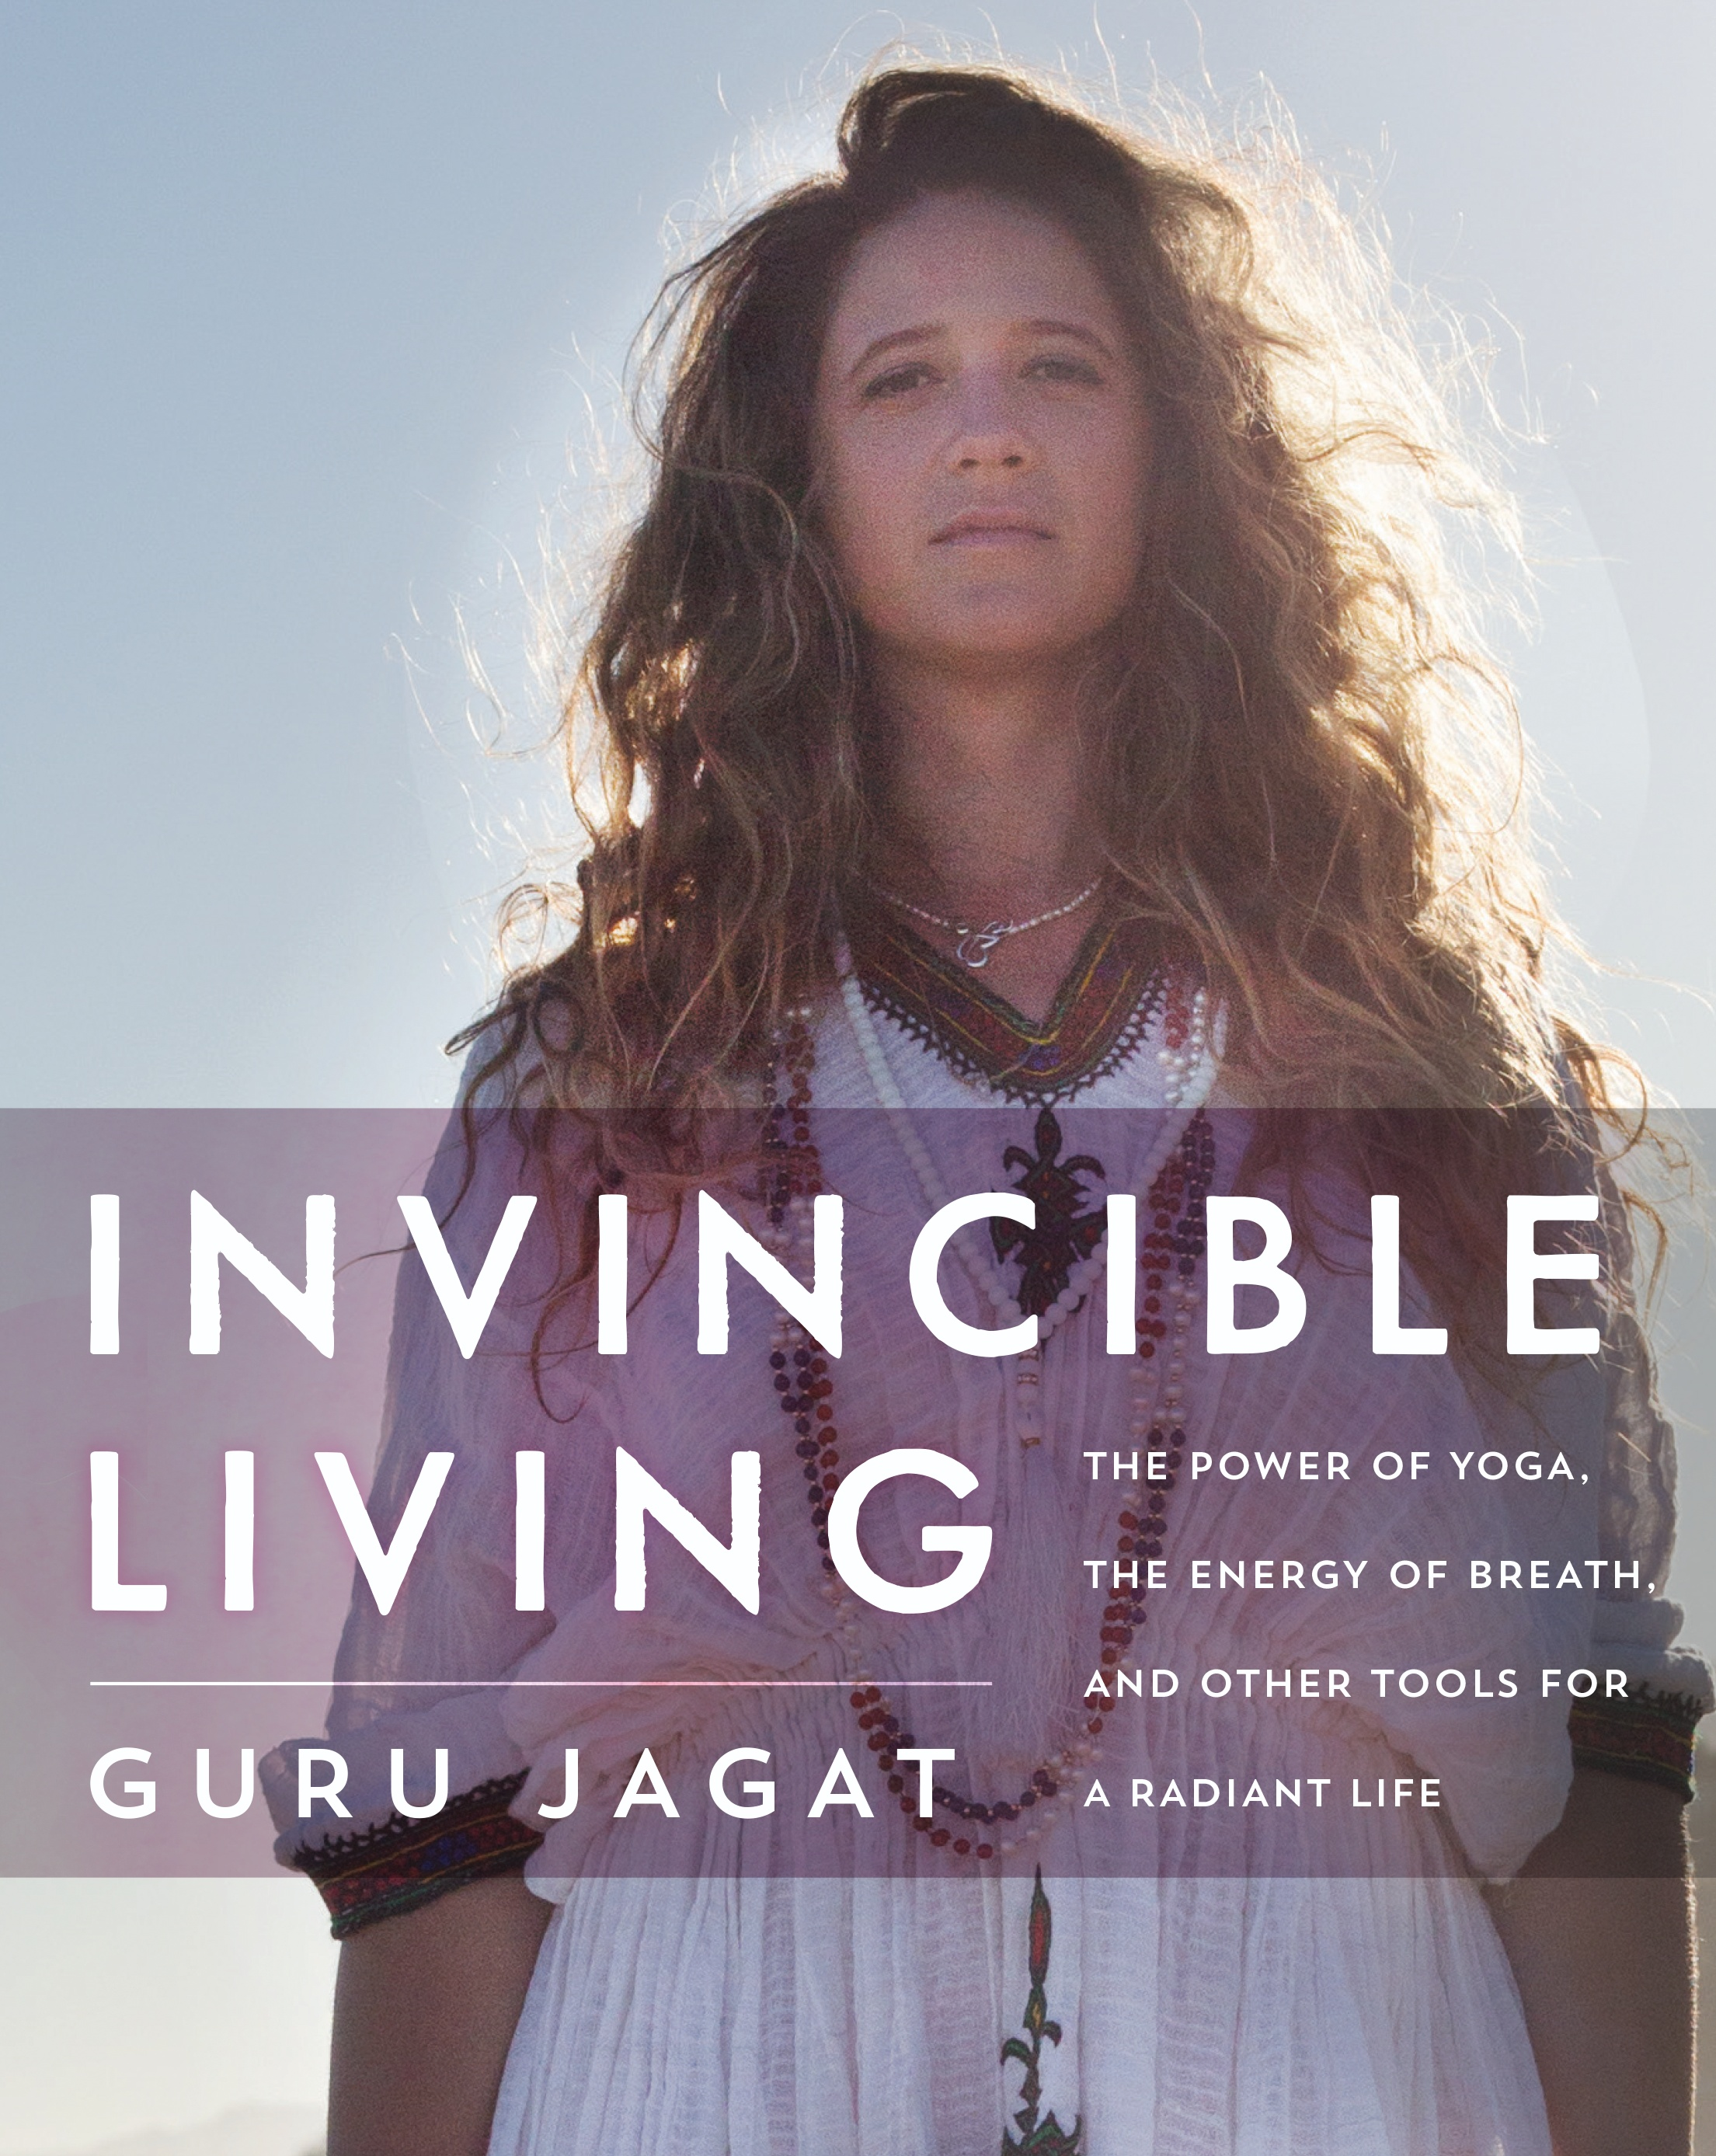 Book Cover: Invincible Living: The Power of Yoga, The Energy of Breath, and Other Tools for a Radiant Life